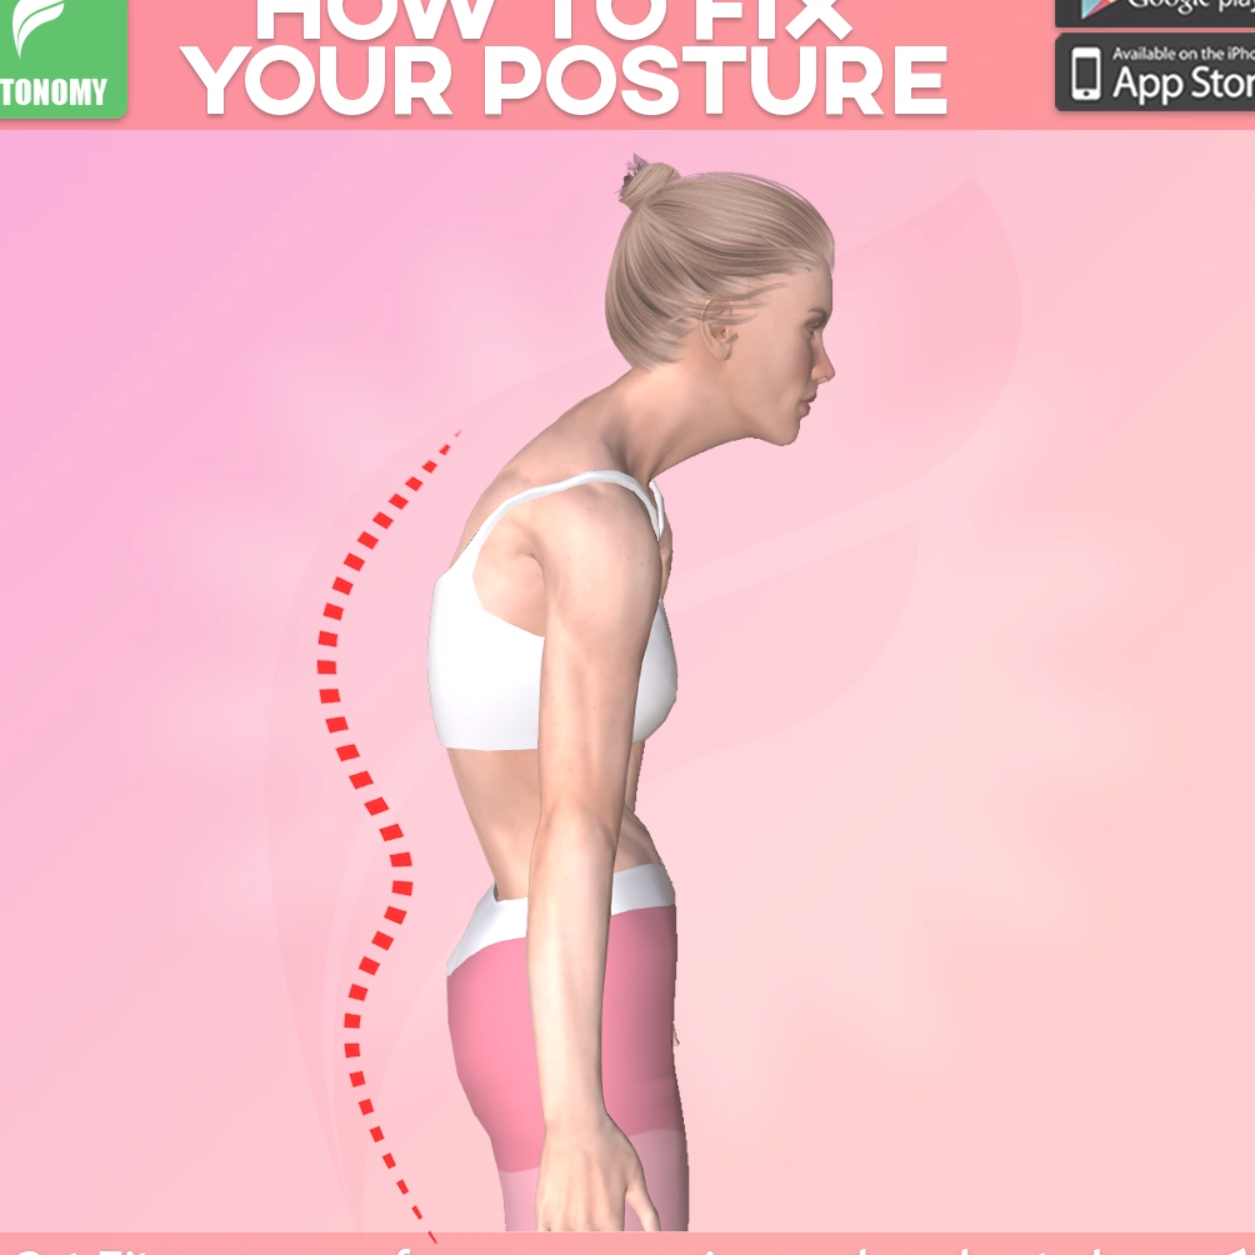 Posture exercises help you to strengthen the muscles in your back and stand a little taller. #fitono...